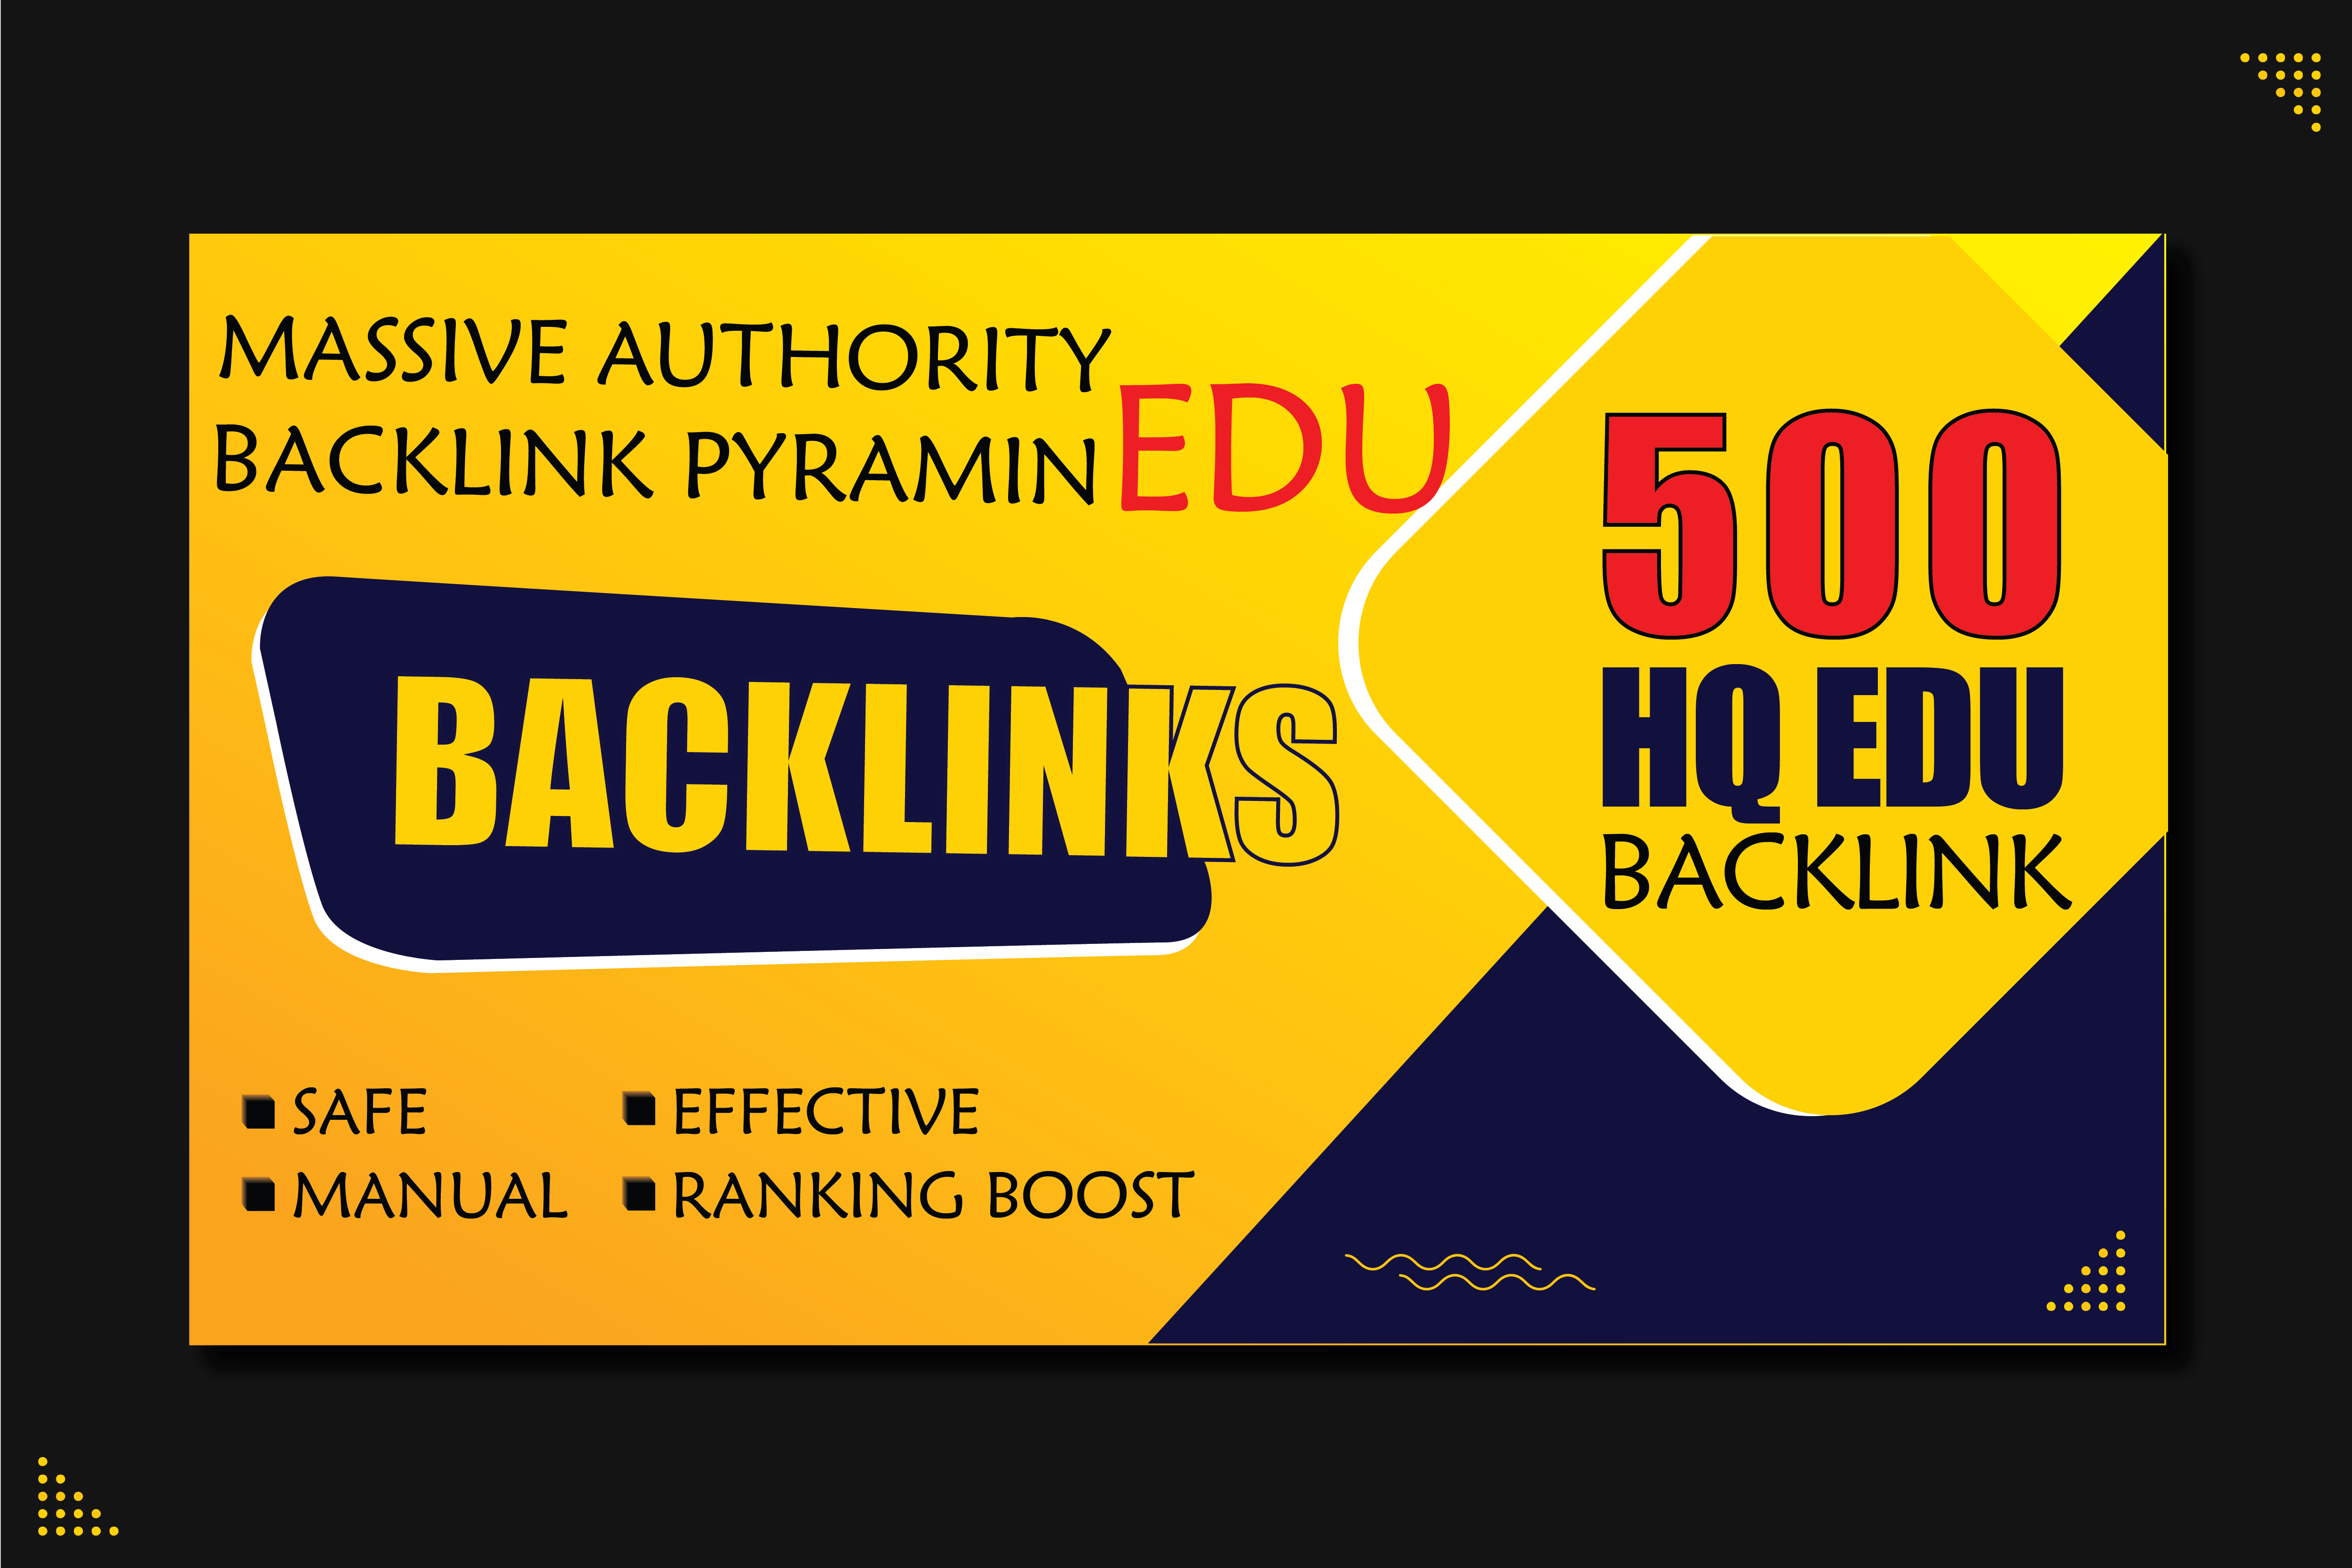 Real ranking boost in google with 500 edu backlinks pyramid